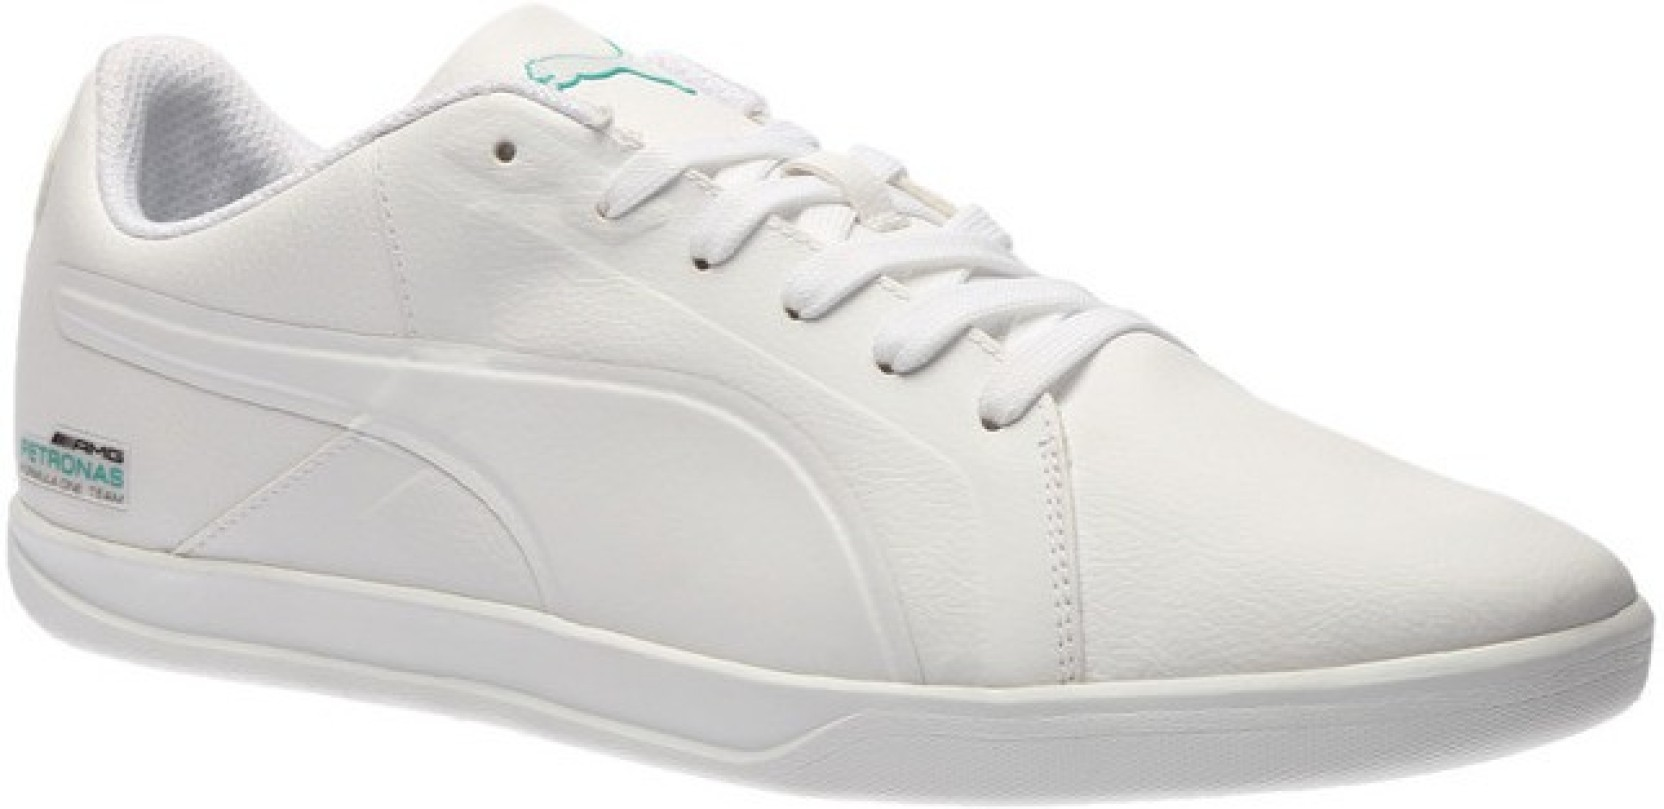 Puma Shoes White Colour